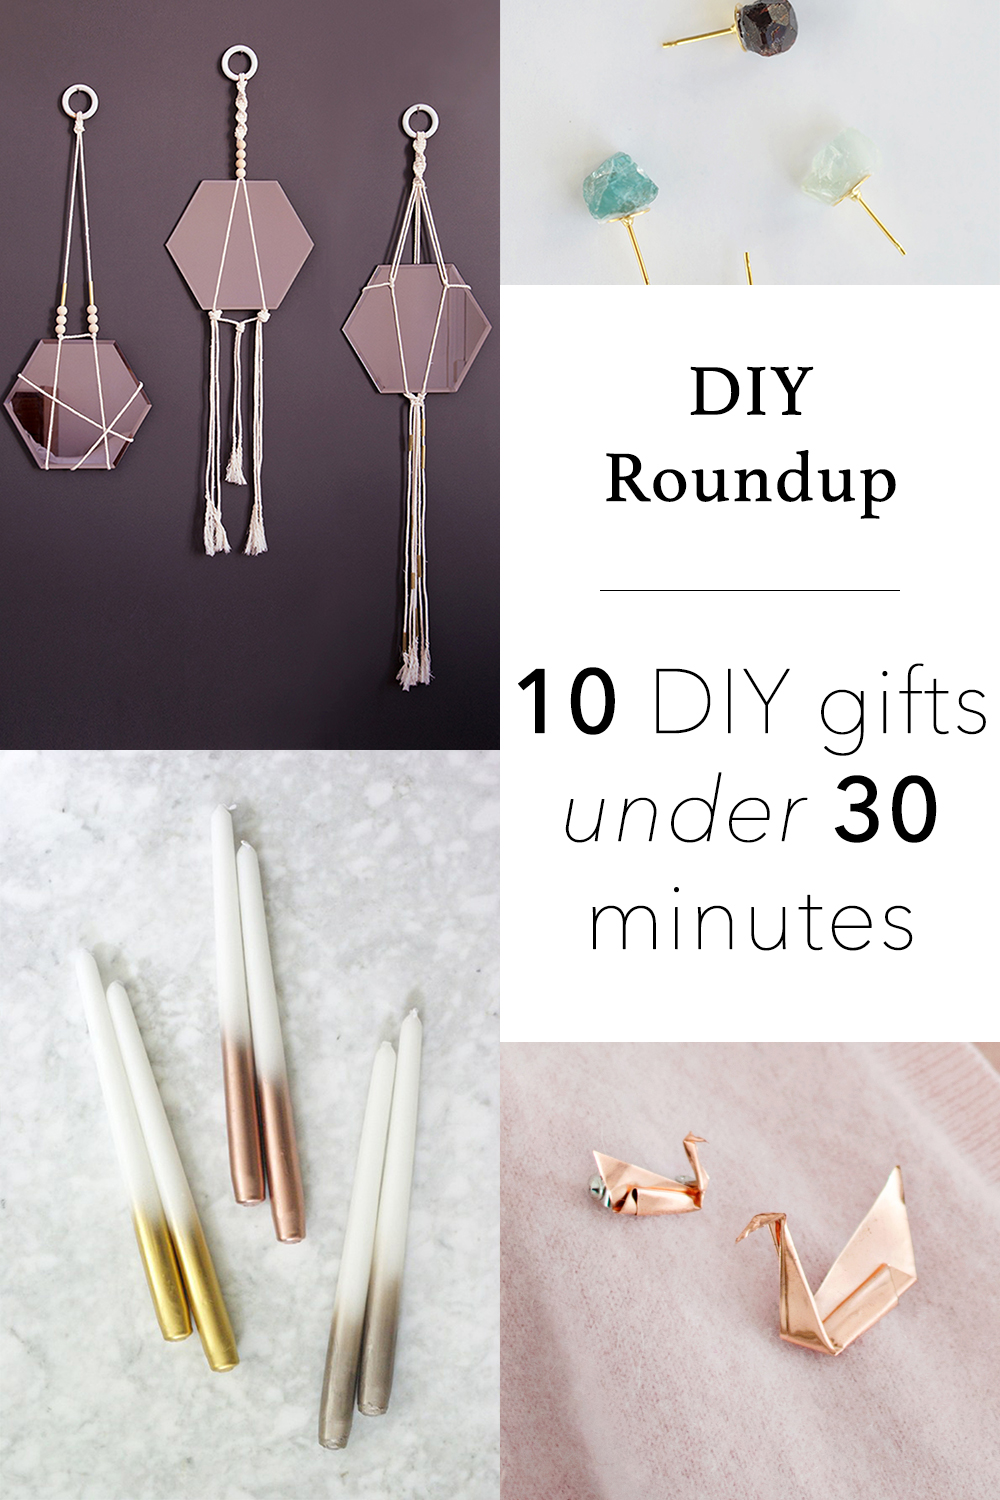 DIY ROUNDUP | 10 Gifts Under 30 Minutes